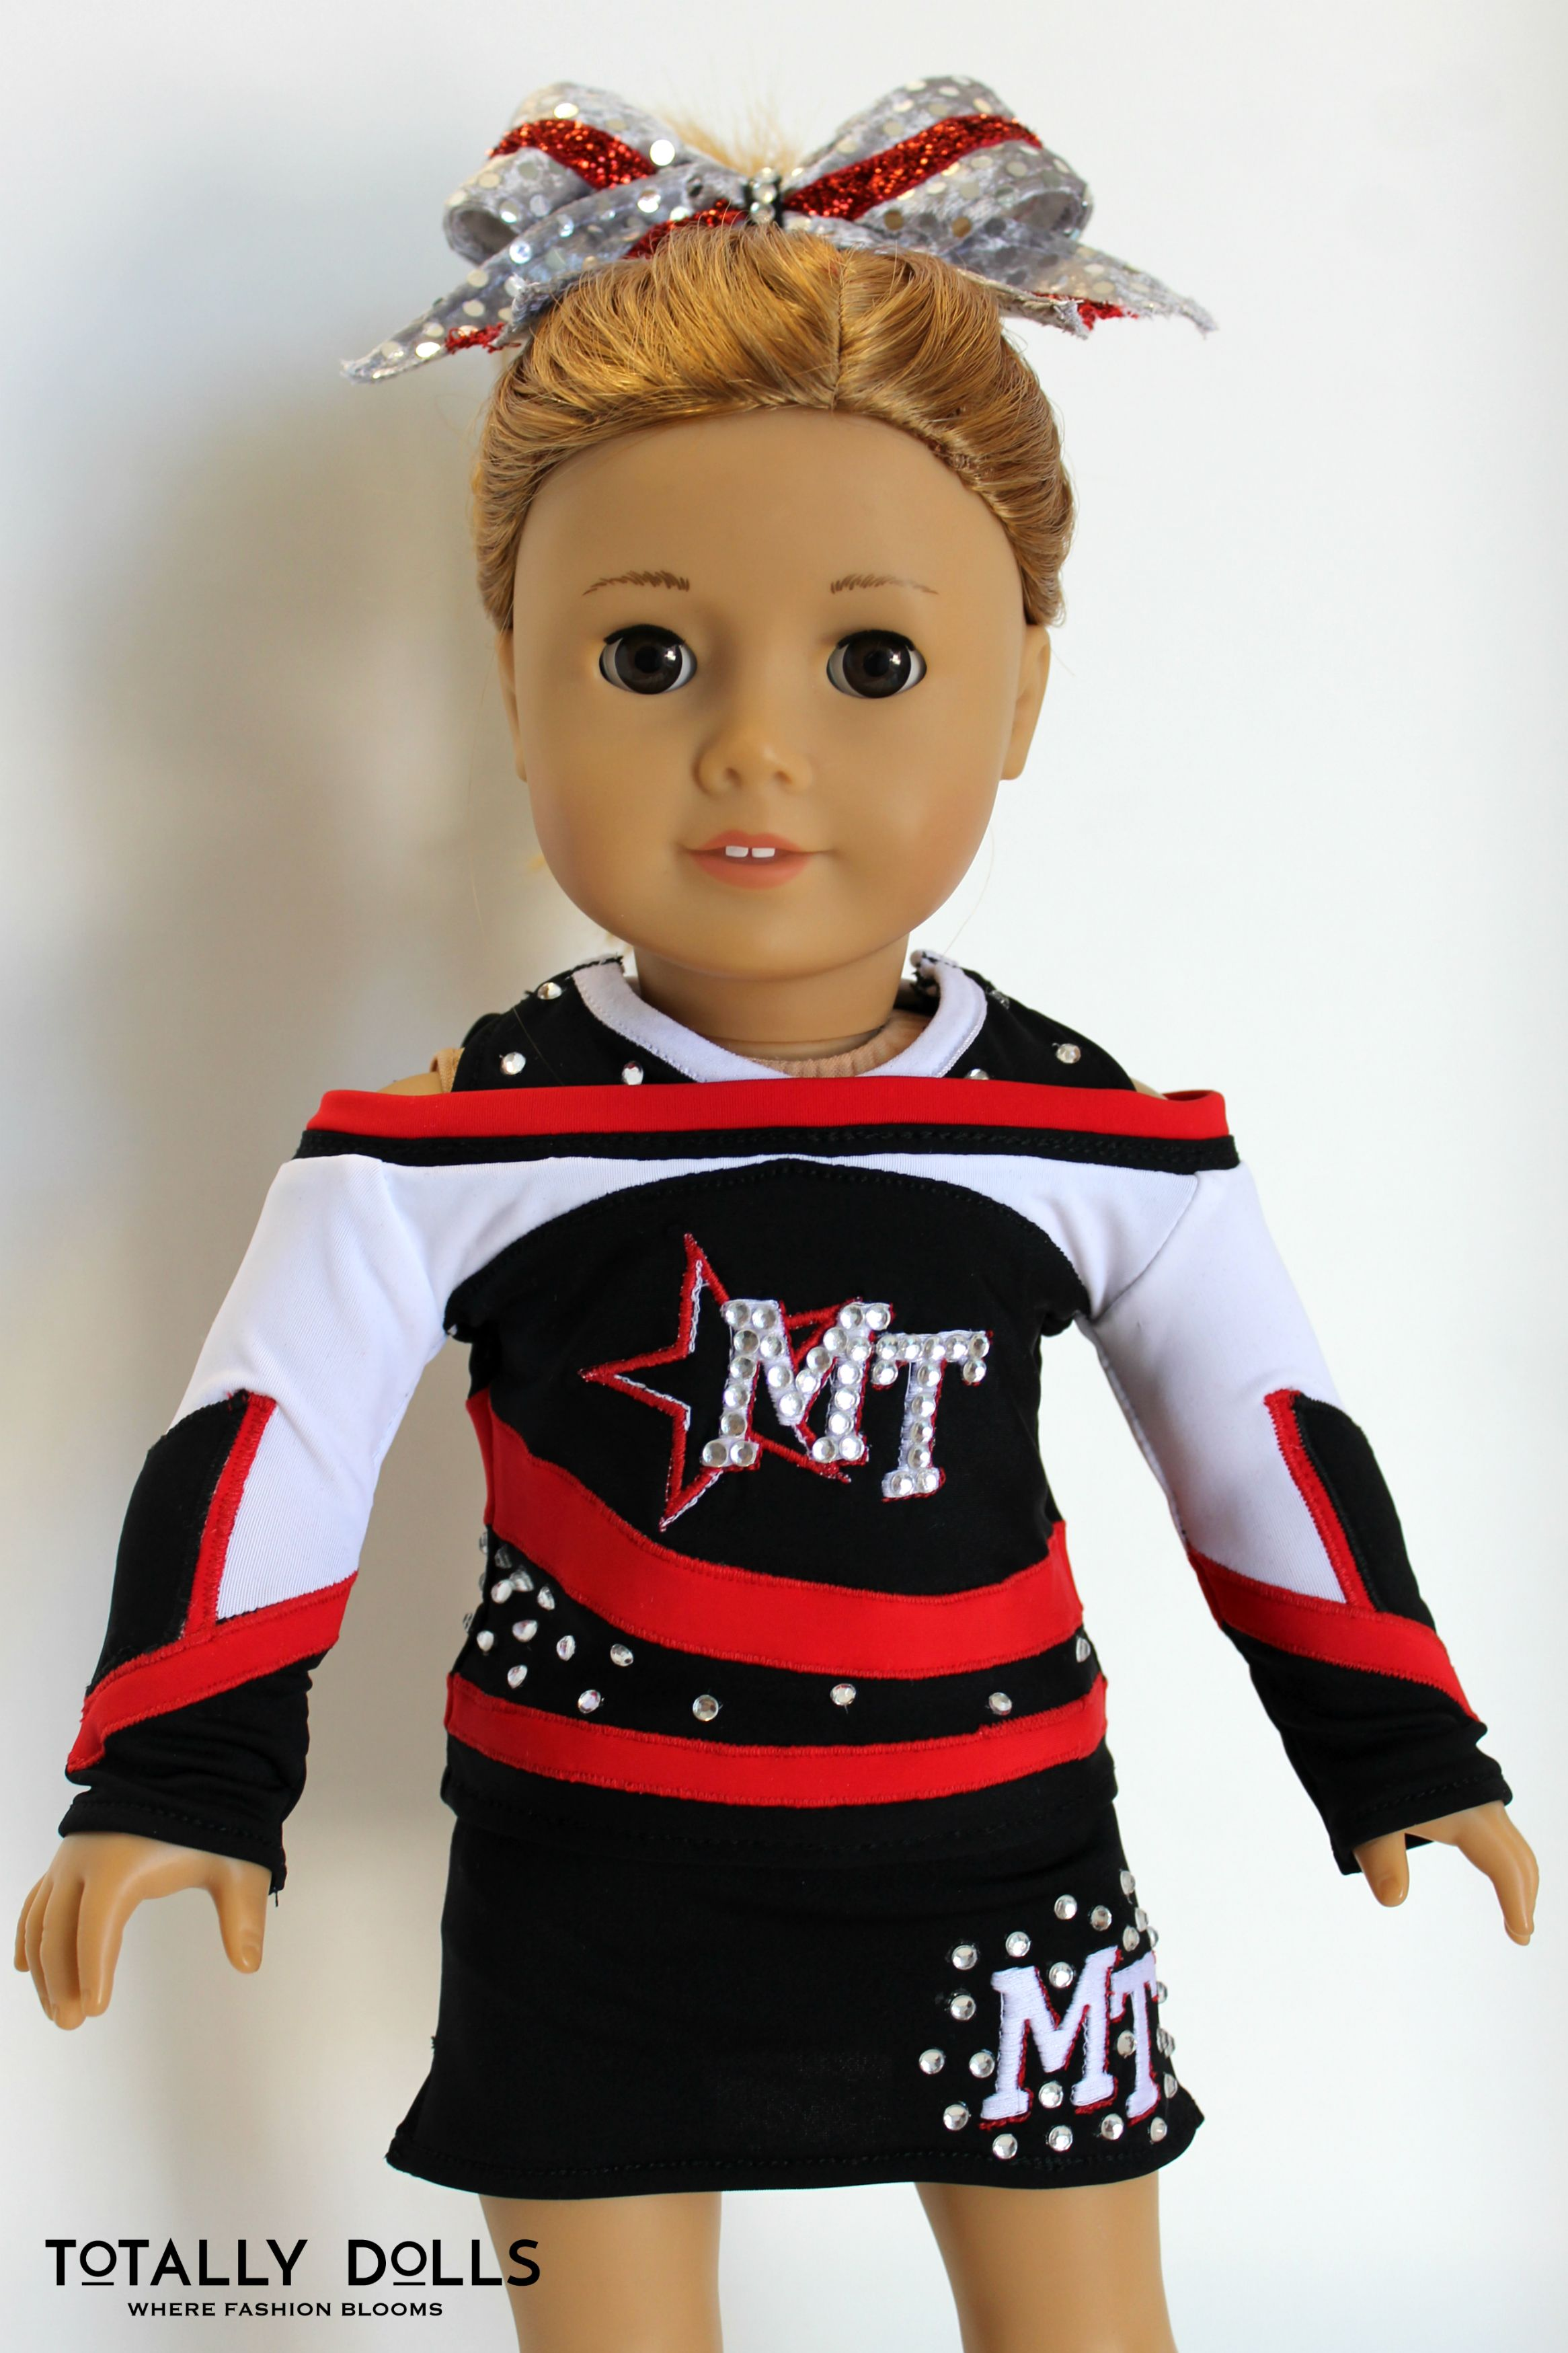 American Girl Doll Clothing 18 Inch Doll Clothing Custom Order Cheer Uniform Competition Chee Doll Clothes American Girl Doll Clothes Dolls Clothes Diy